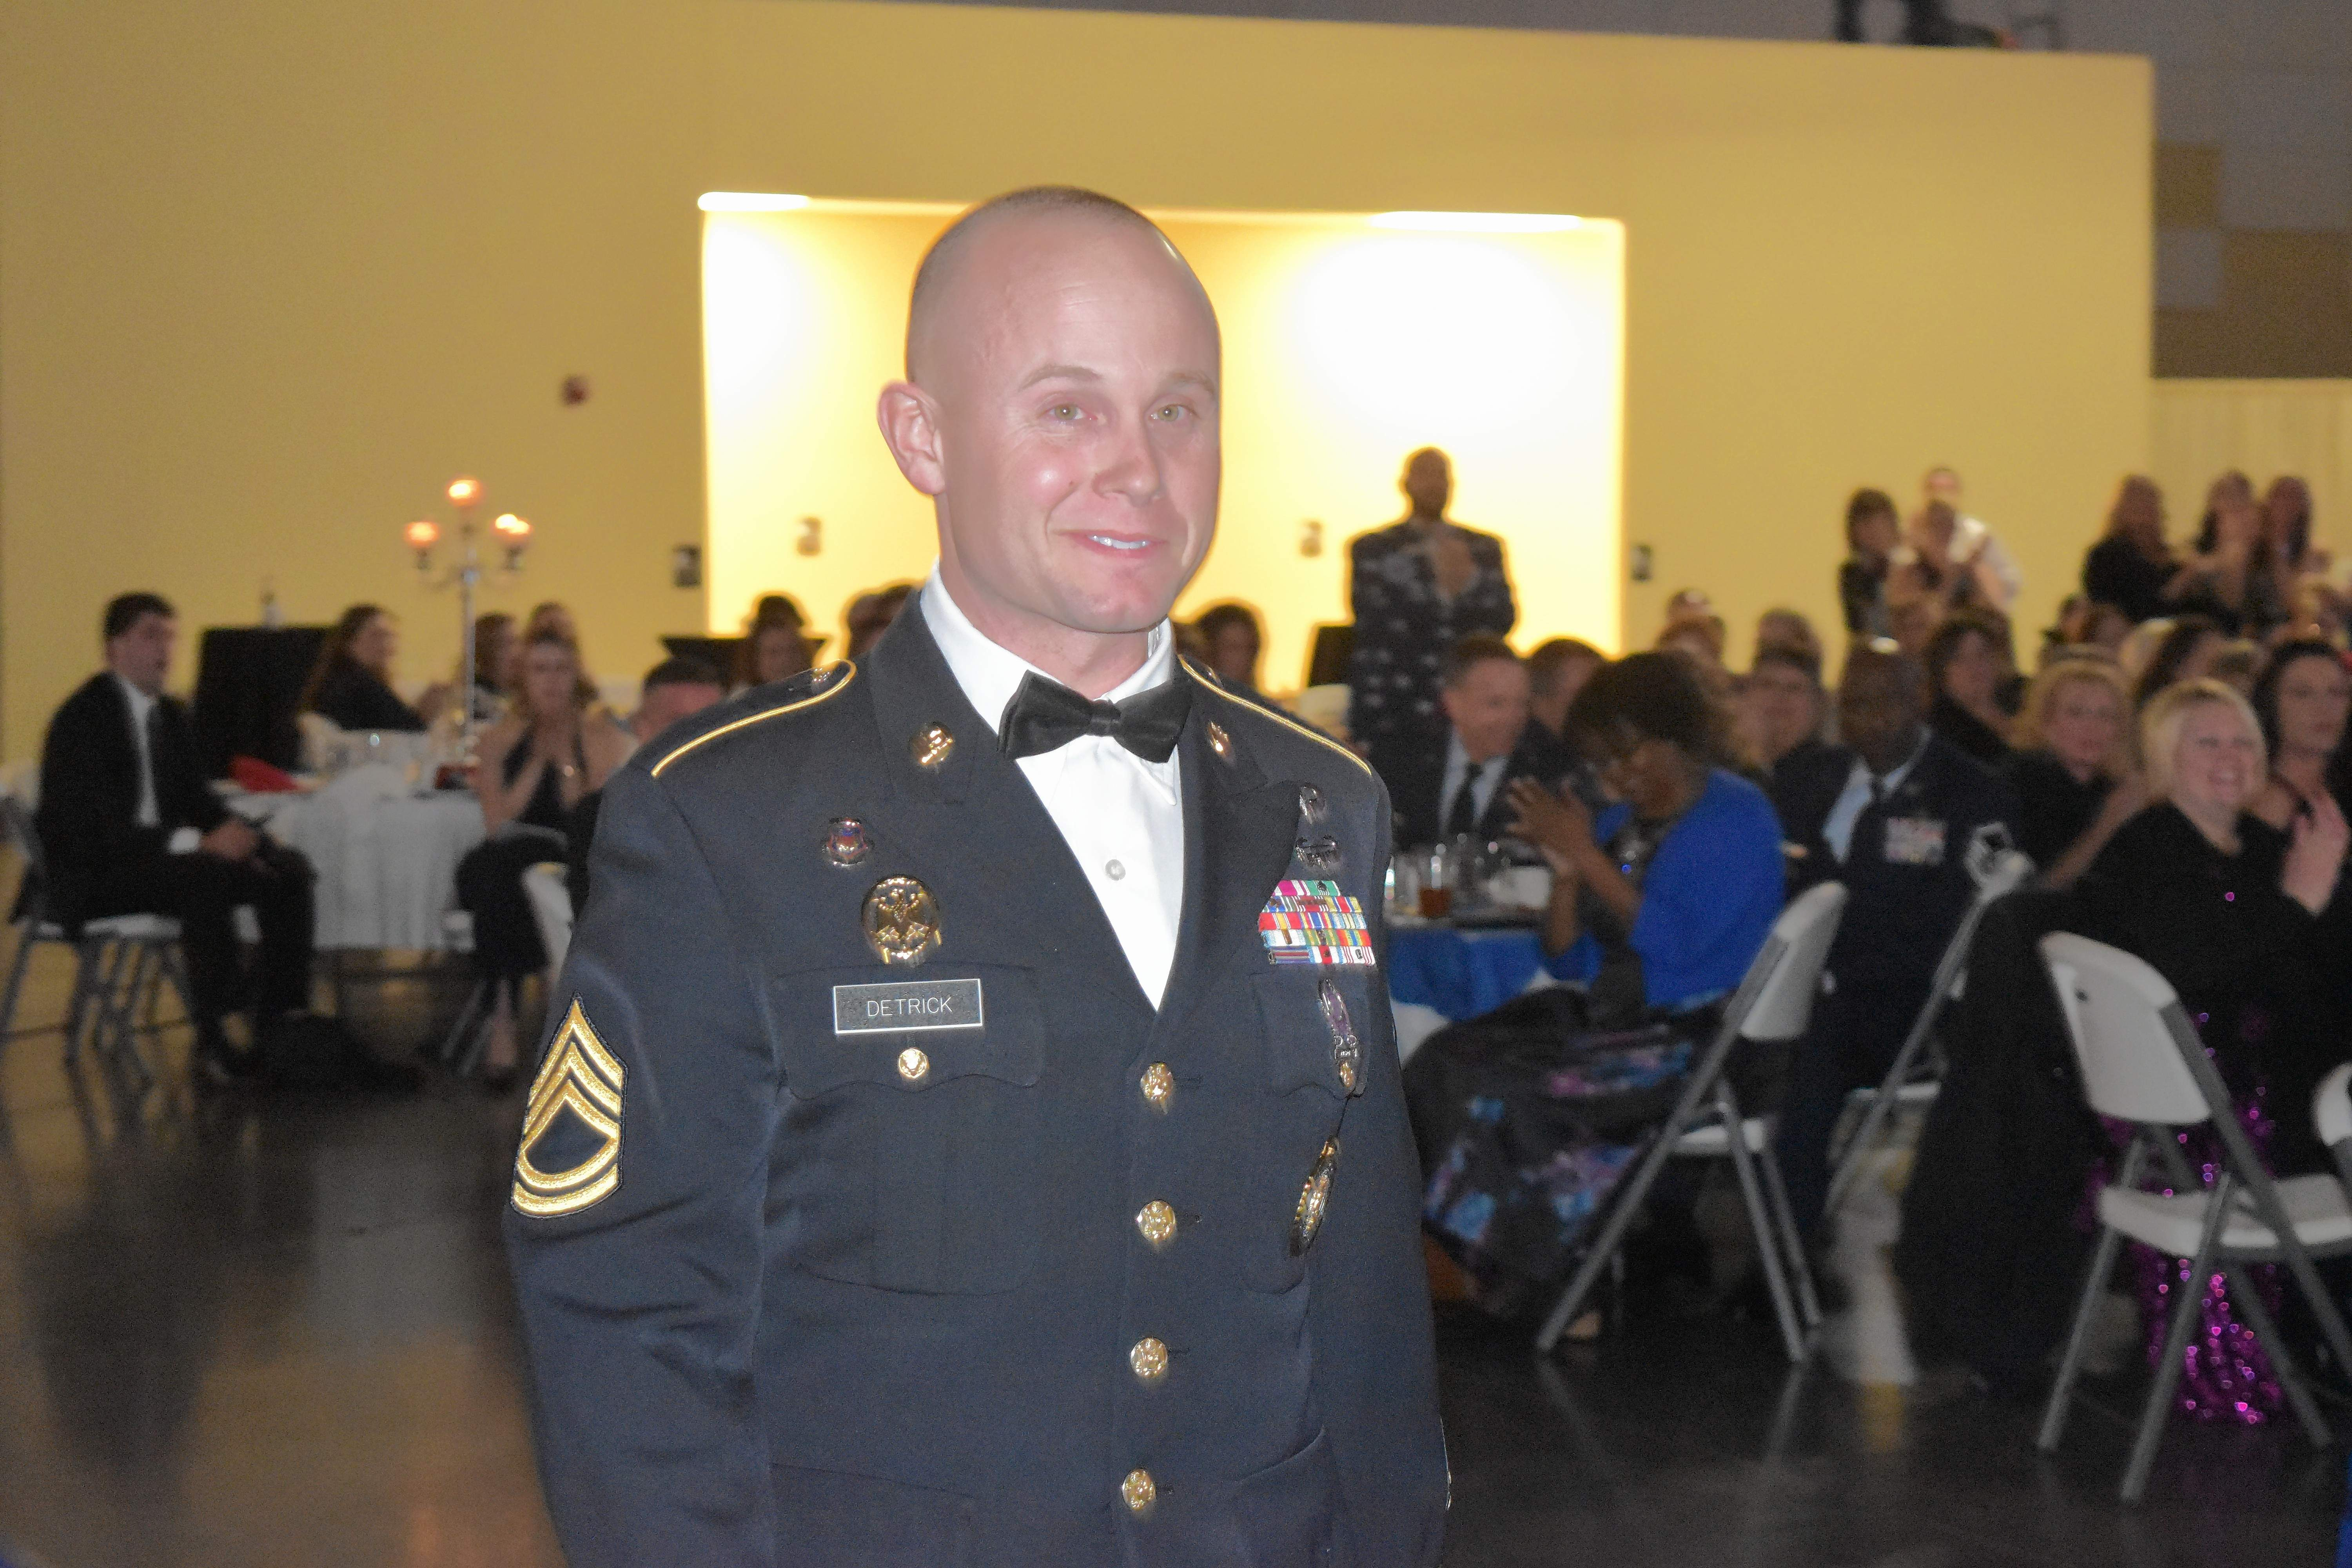 Beau Detrick with the Illinois Army National Guard was named 'Citizen of the Year' by the Marion Chamber of Commerce.